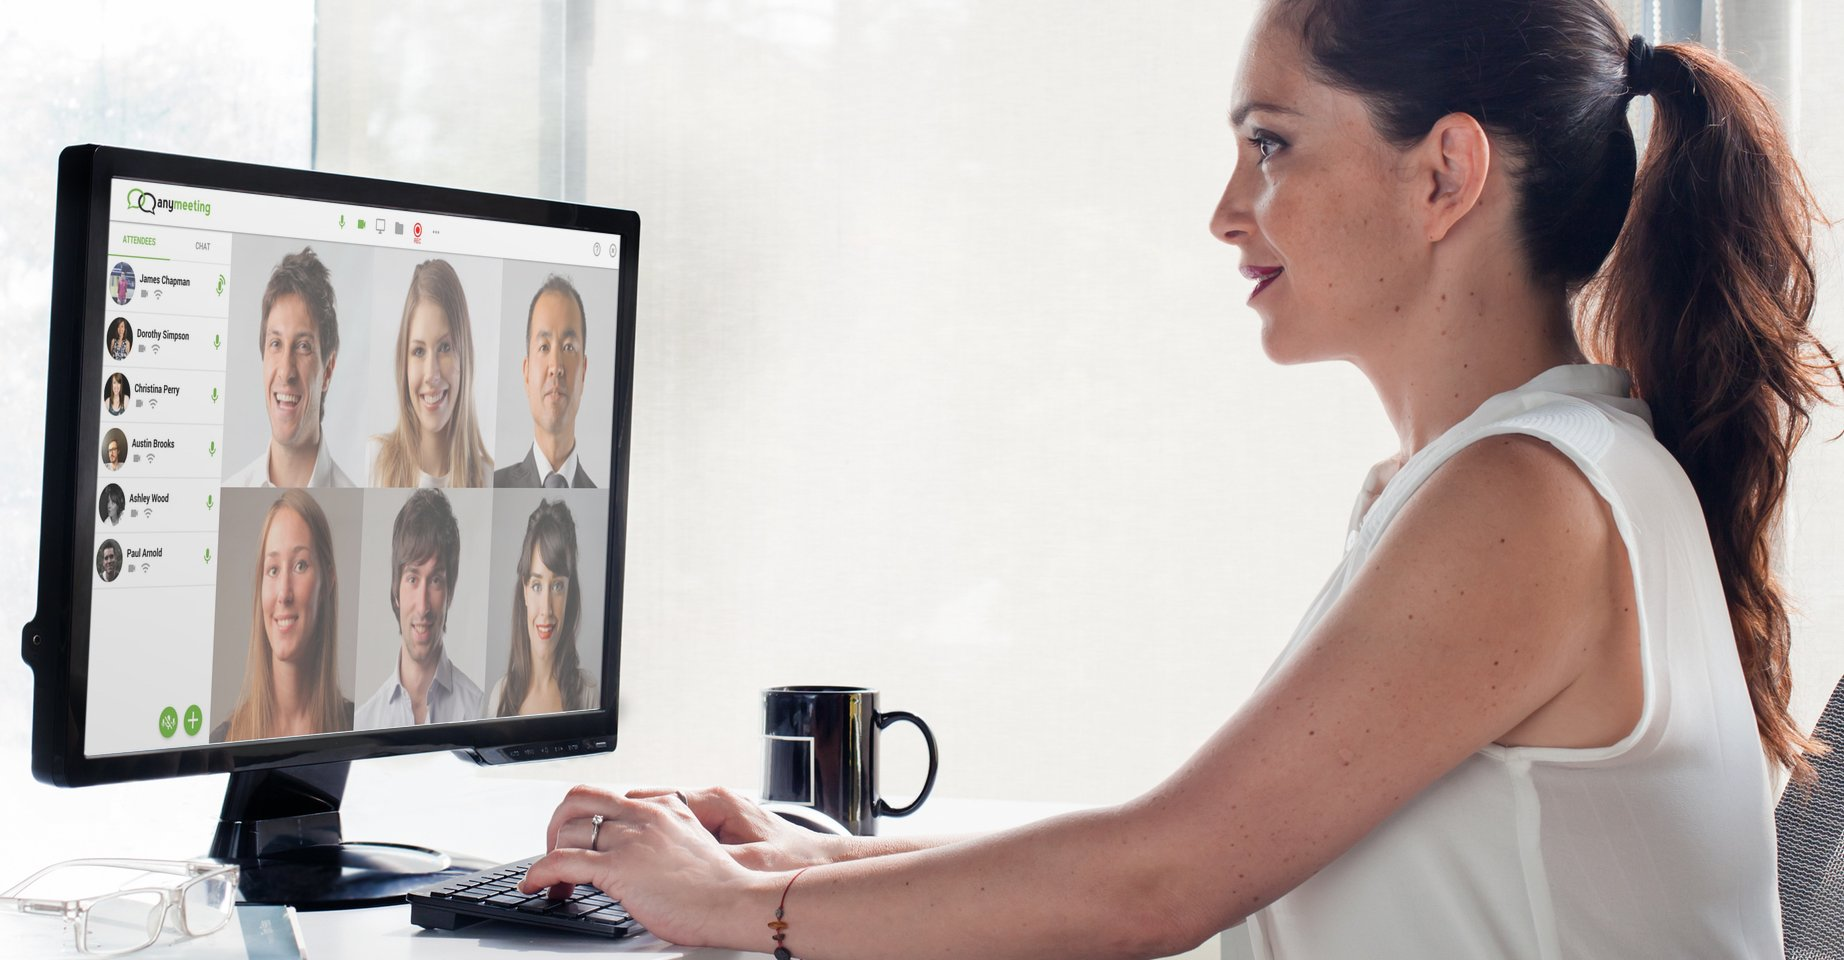 AnyMeeting Demo - Simple and easy video conferencing with no downloads